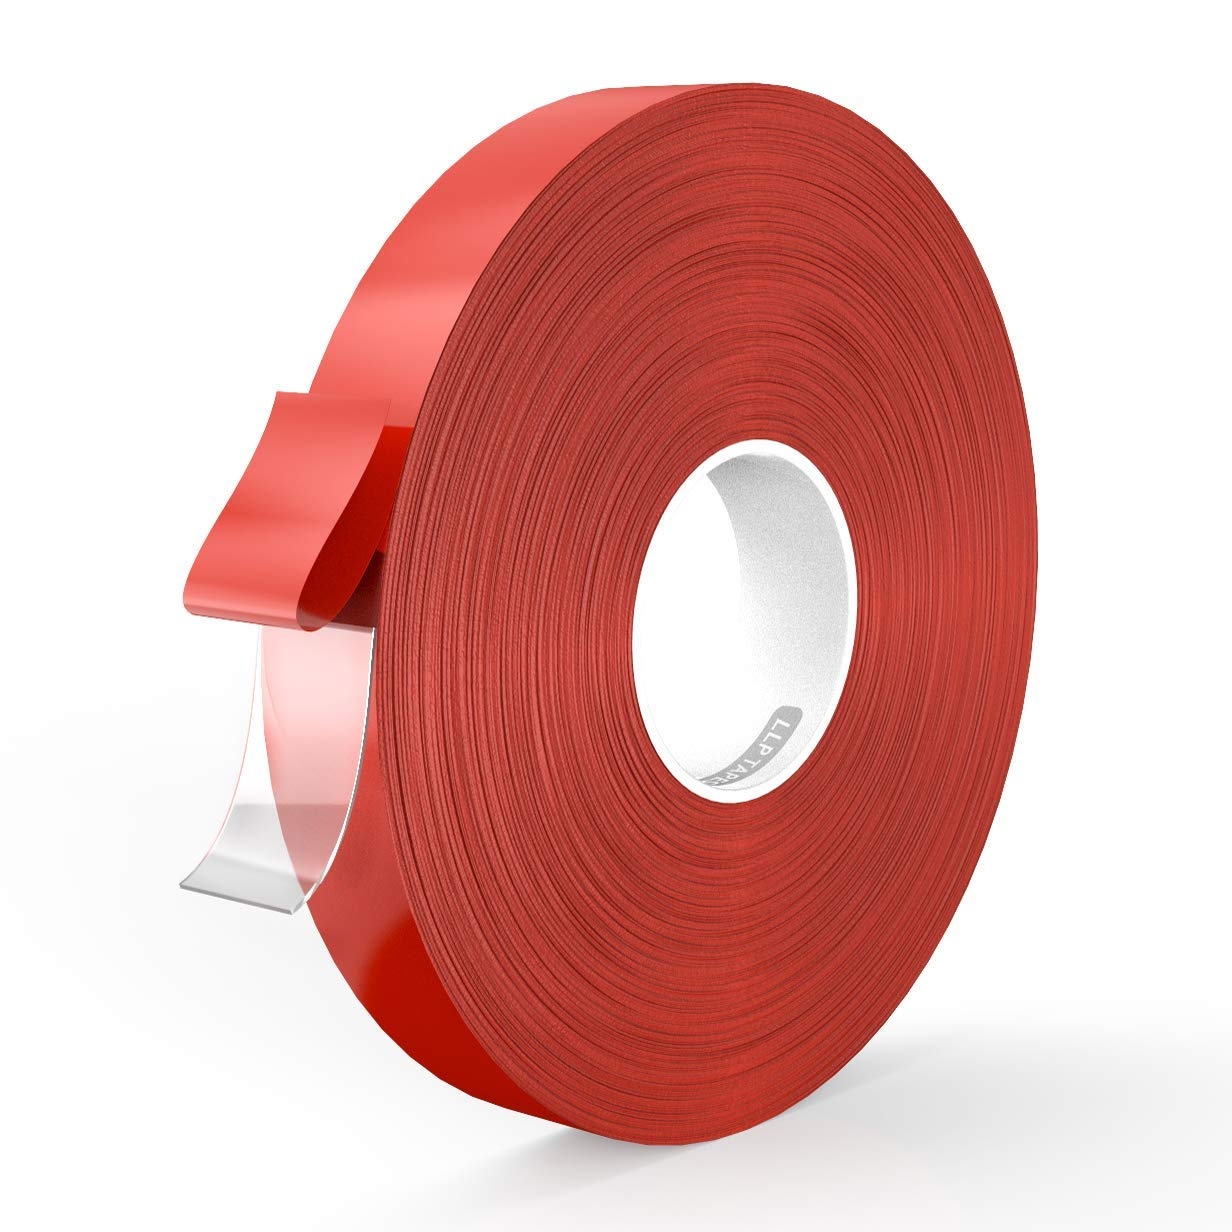 Mounting Tape - Waterproof Double Sided Tape Multi-Functional Anti-Slip Reusable Magic Adhesive Heavy Duty Tough&Clean for Outdoor & Indoor in Cold/Hot Condition Removable (Red, 2in Width) by Grell